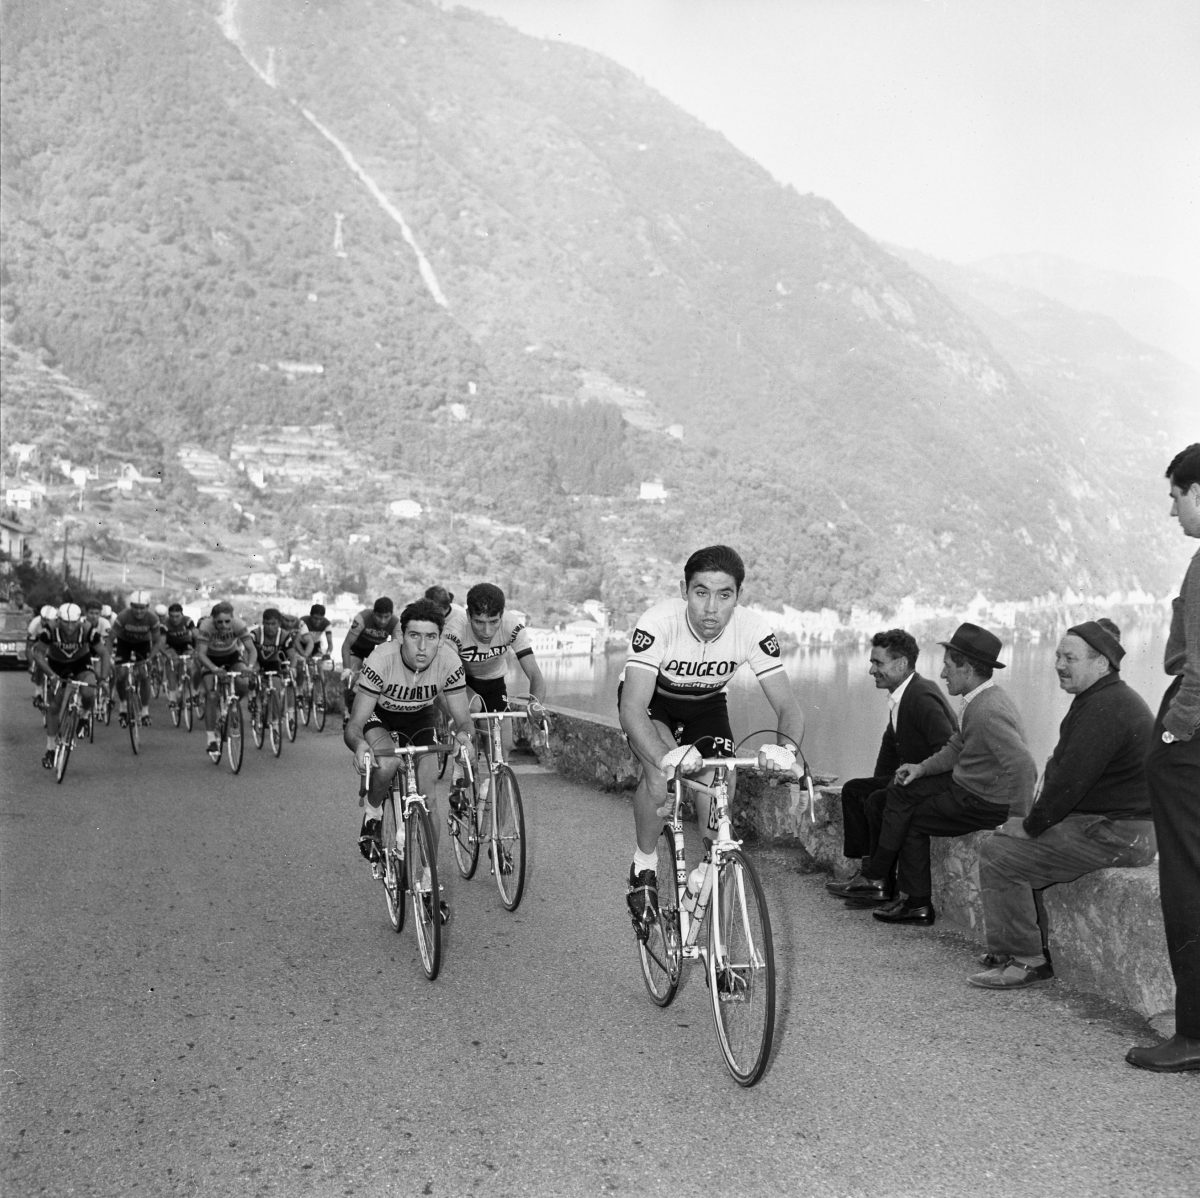 Gallery: Vintage Lombardy – the race of the falling leaves